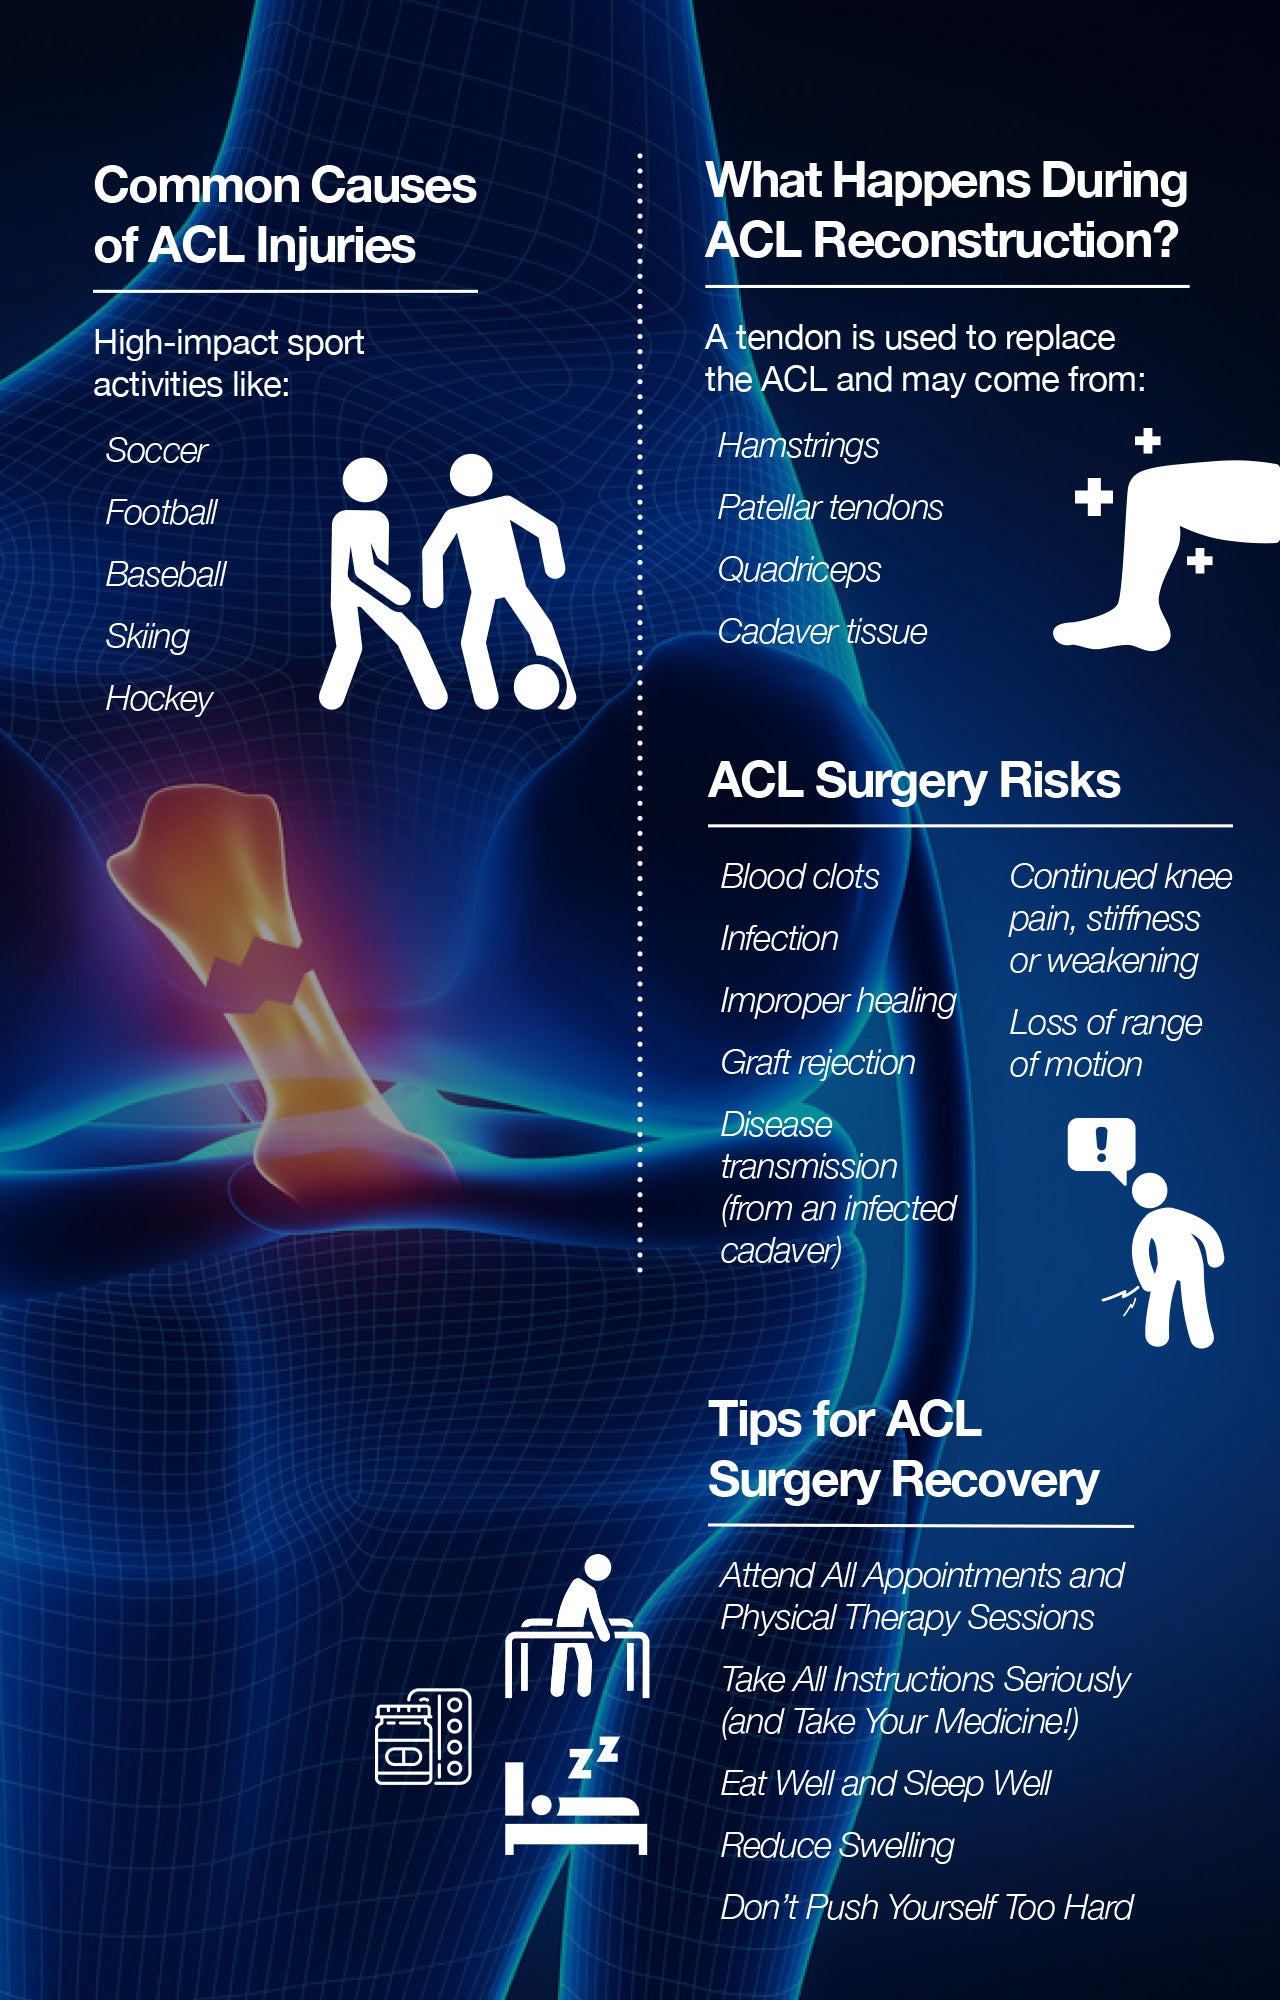 ACL surgery recovery tips to accelerate healing.